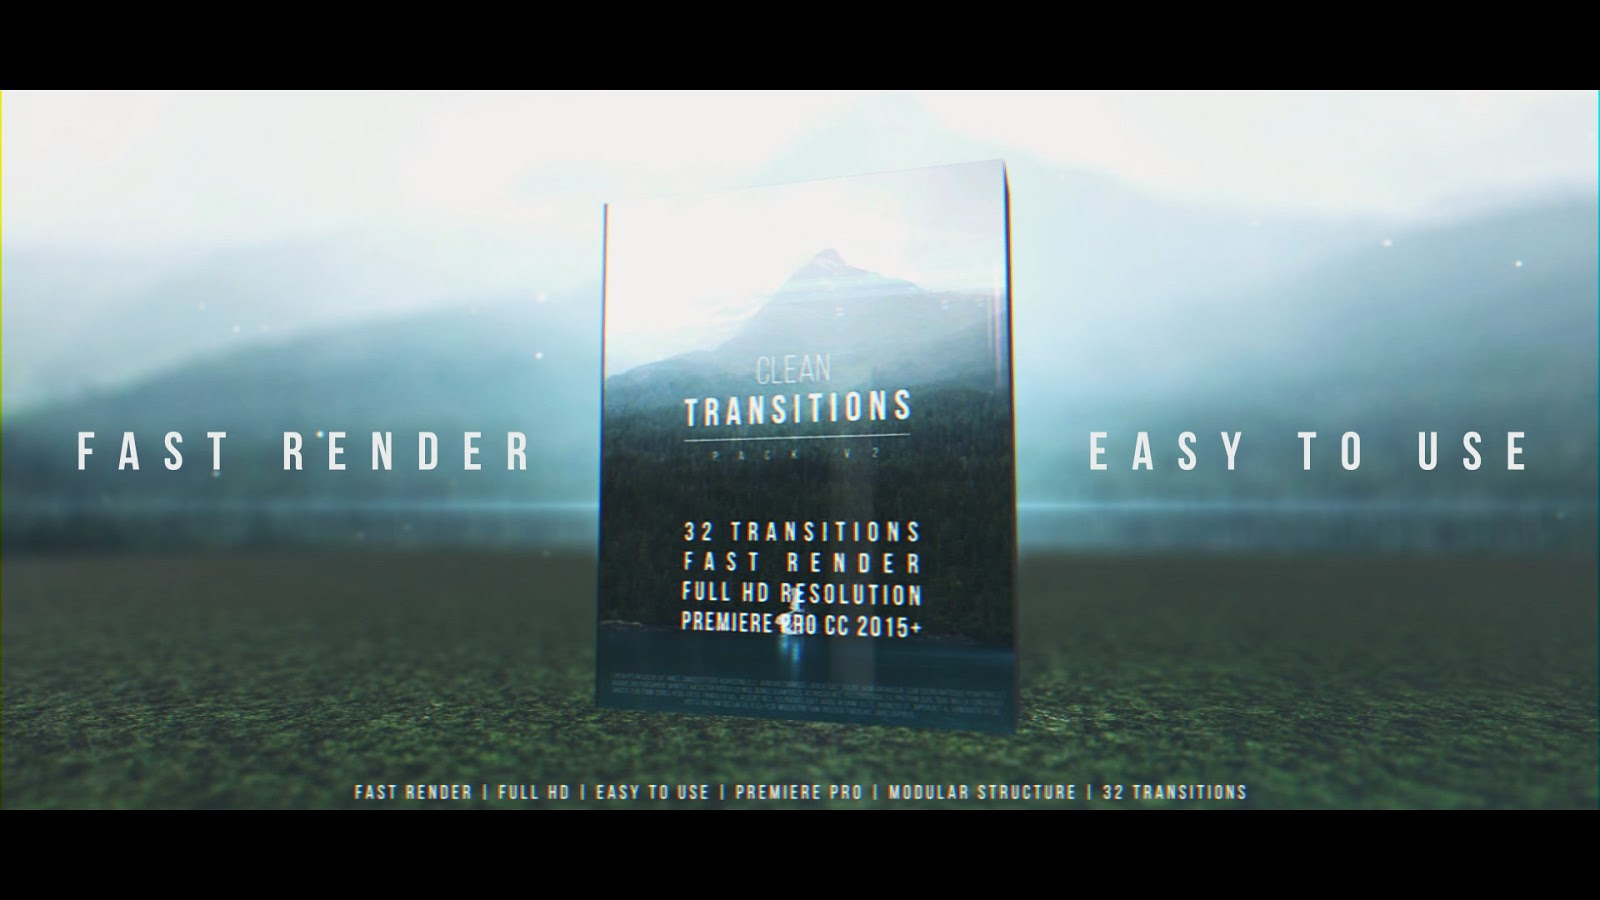 Clean Transitions Pack v2 - Premiere Pro Templates | Motionarray